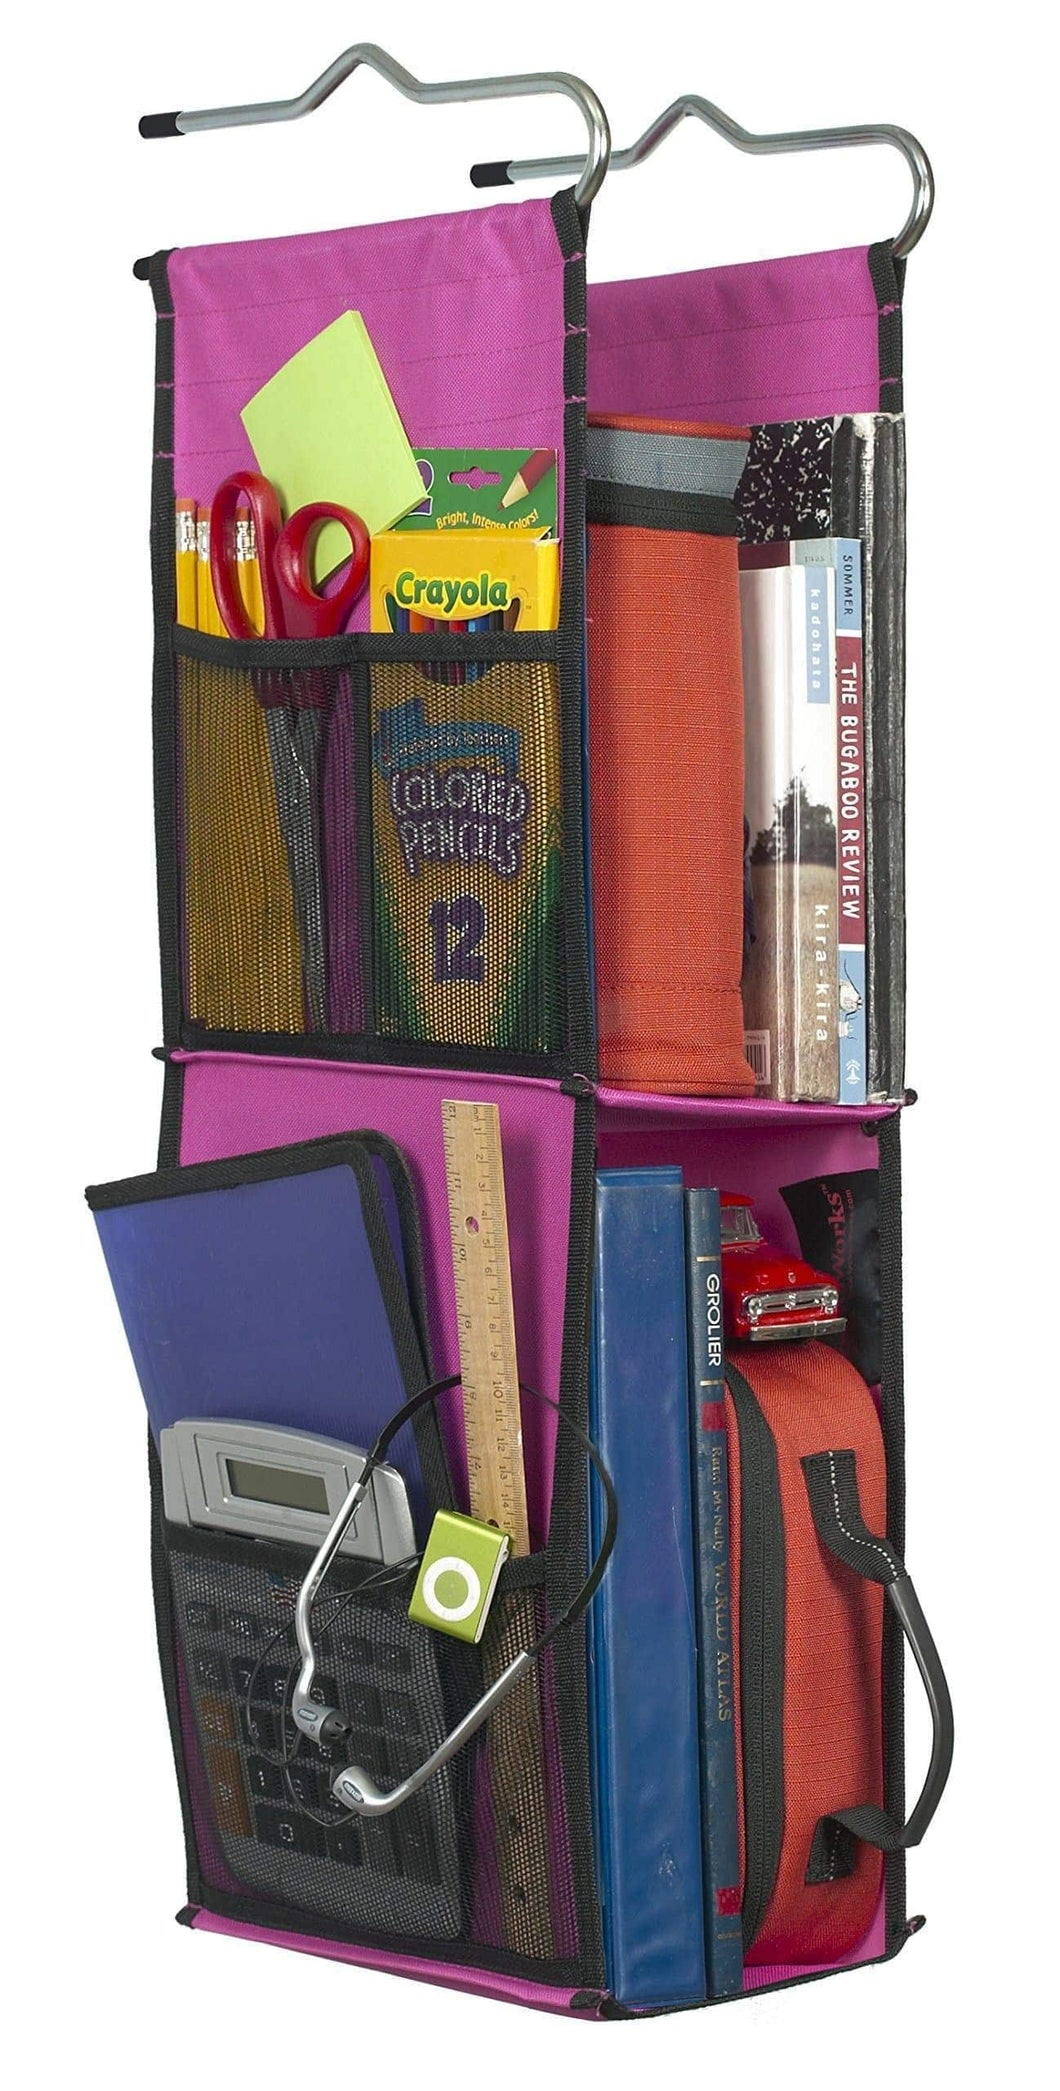 Products lockerworks 2 shelf hanging locker organizer 22 24 inches tall side pockets suspends from hooks shelf or closet rod fuchsia black